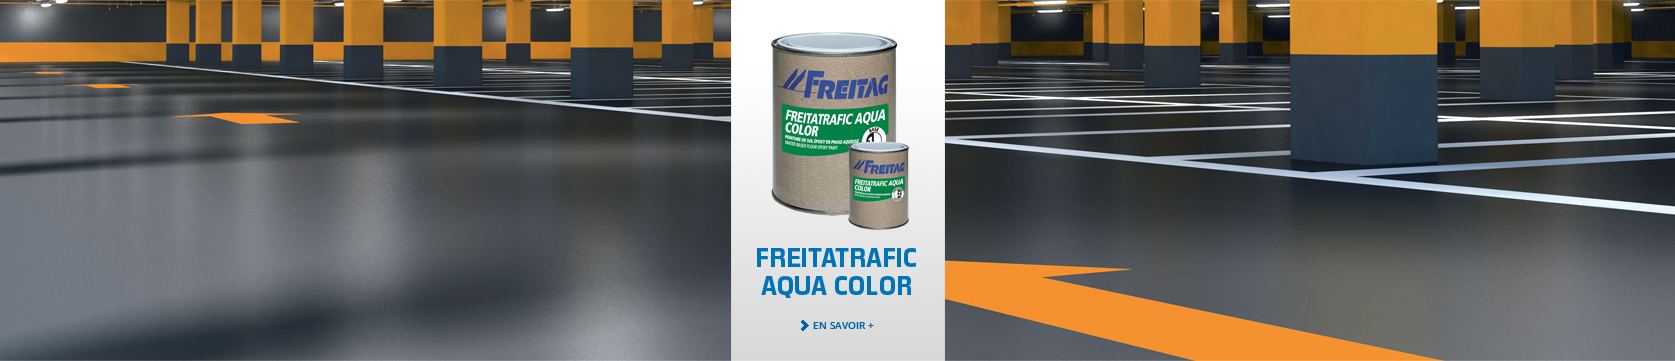 Freitatrafic Aqua Color